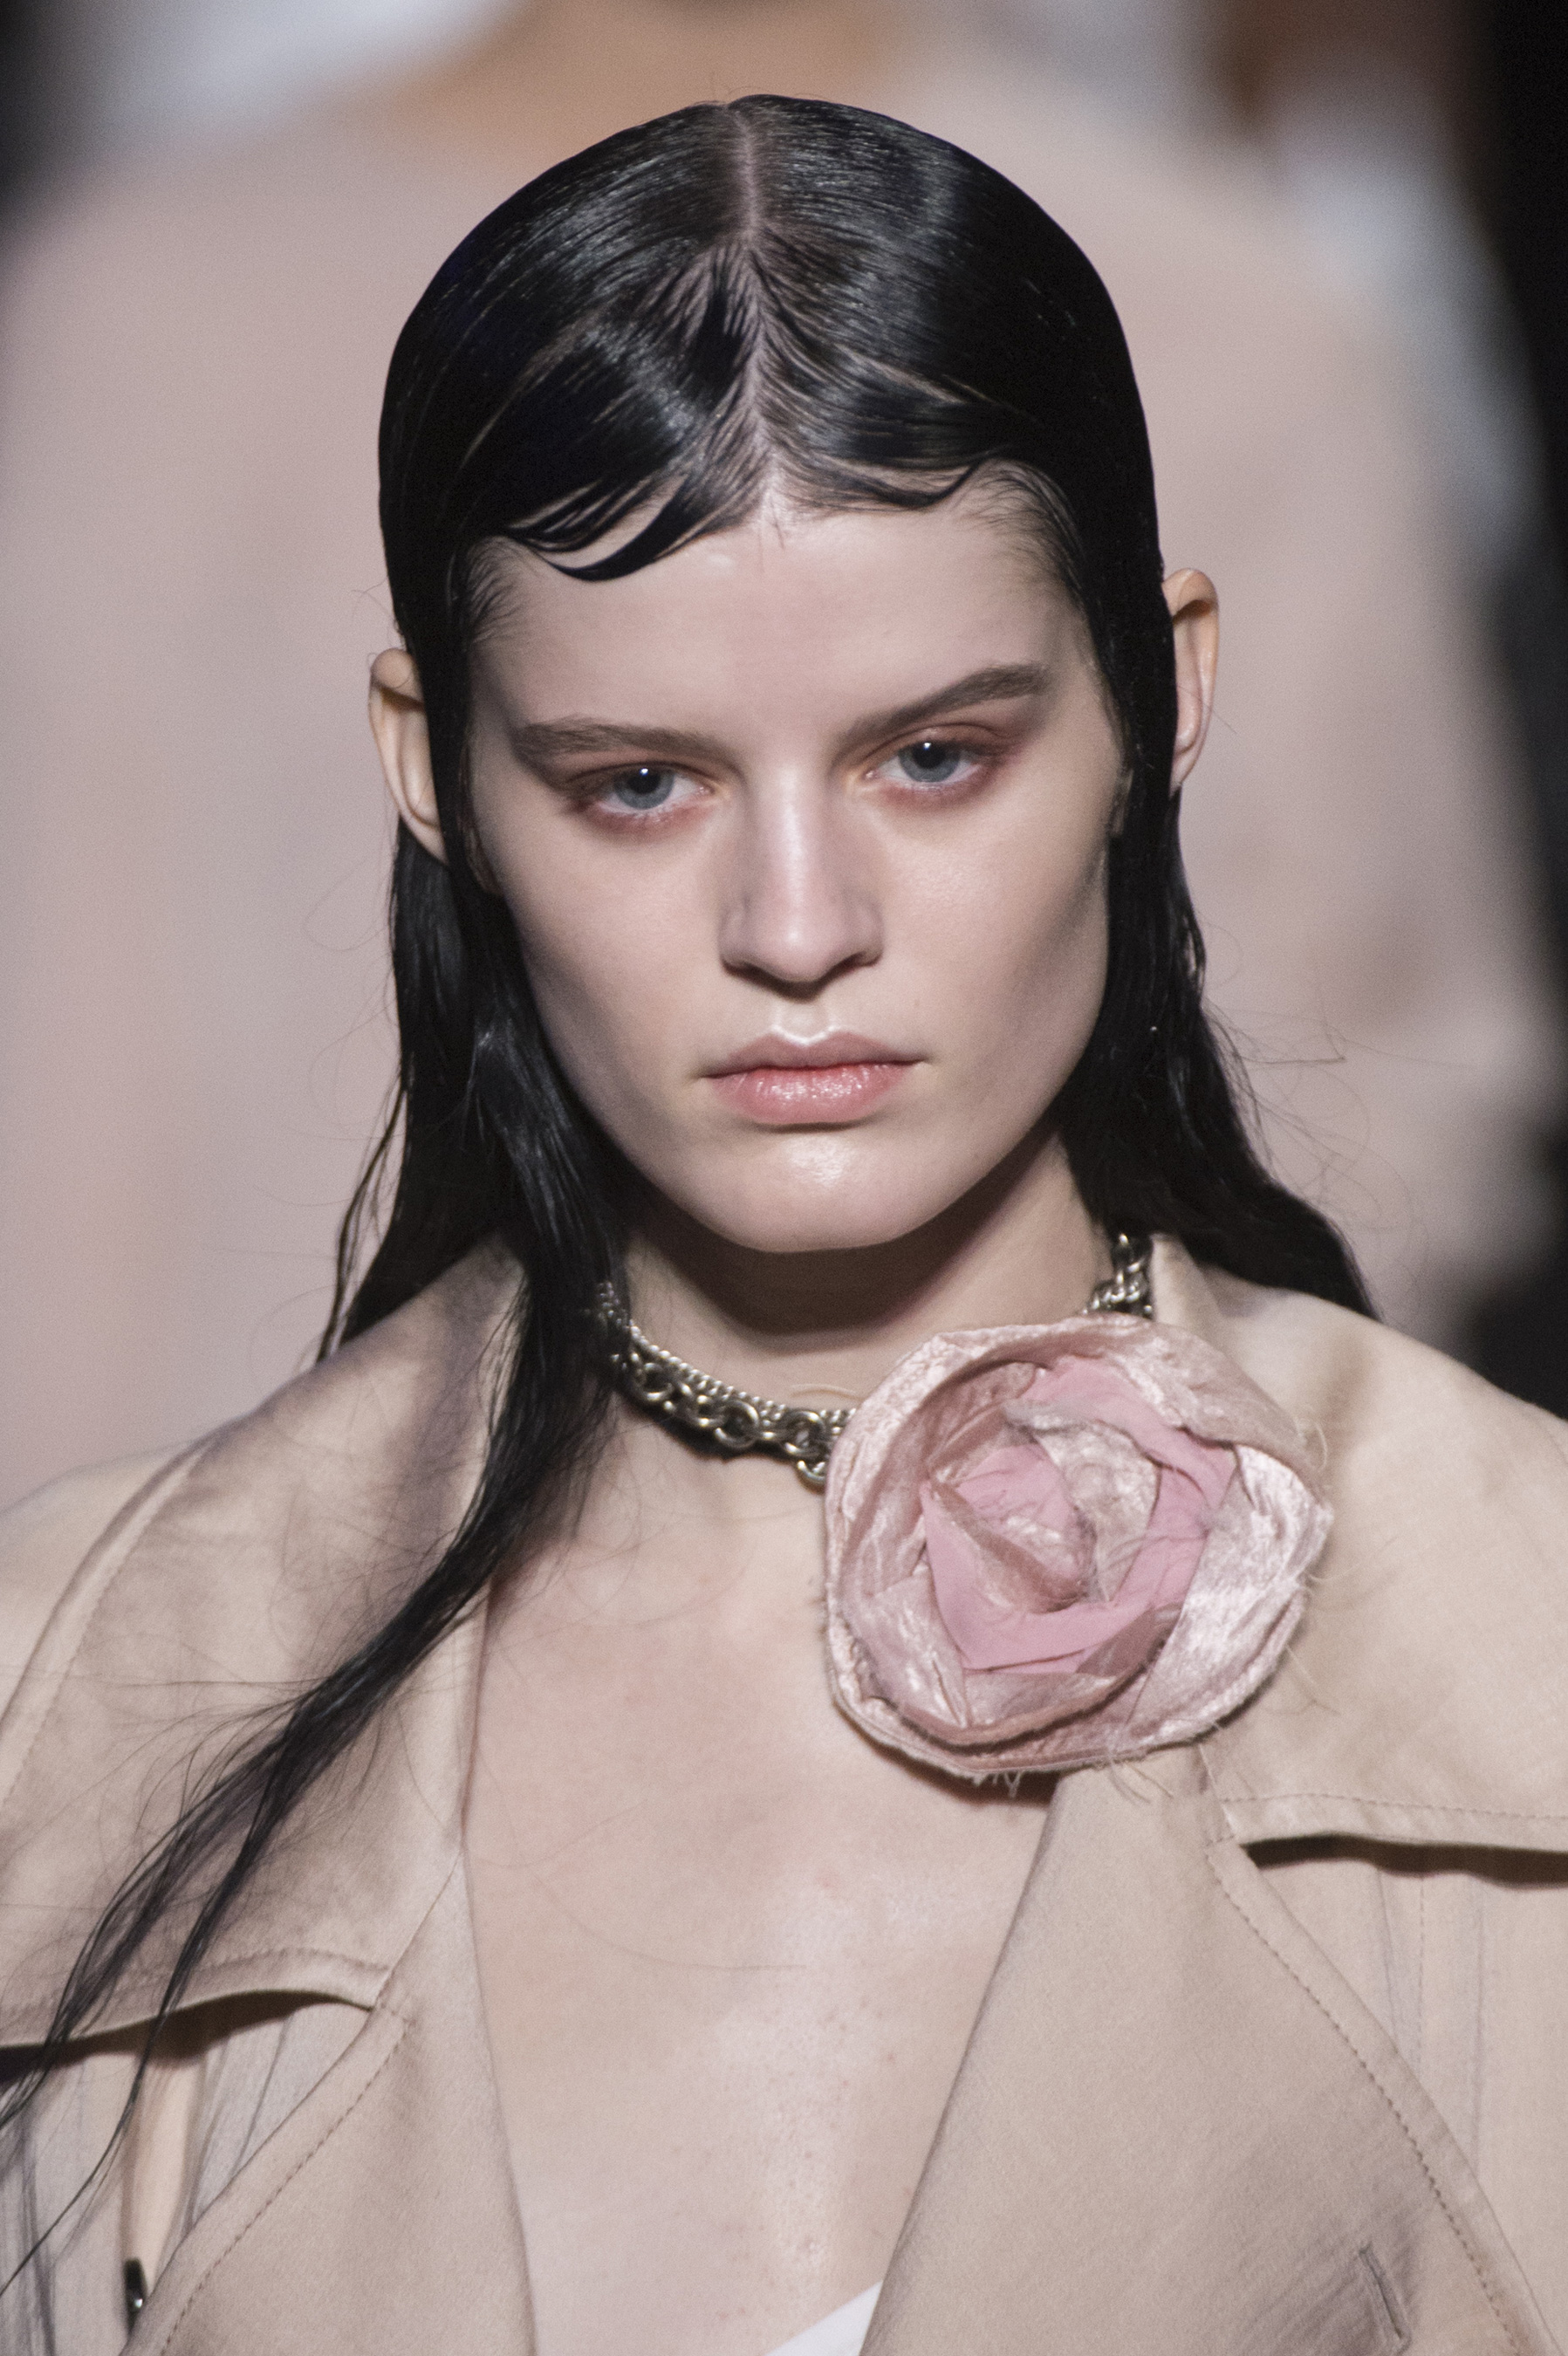 Ann Demeulemeester Spring 2019 Fashion Show Runway Beauty